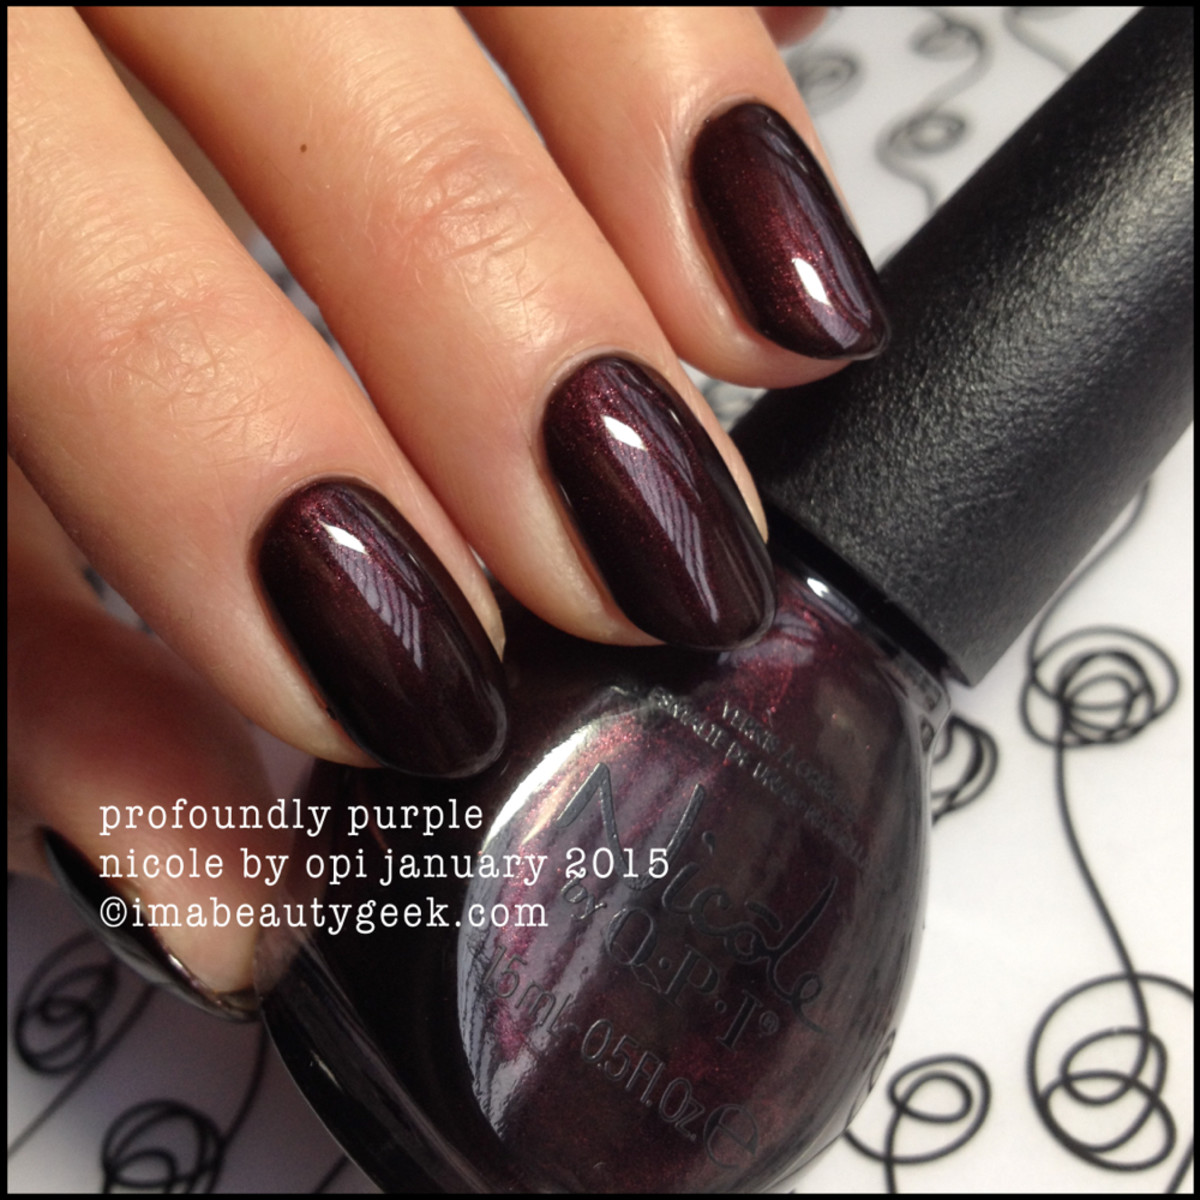 Nicole by OPI Profoundly Purple